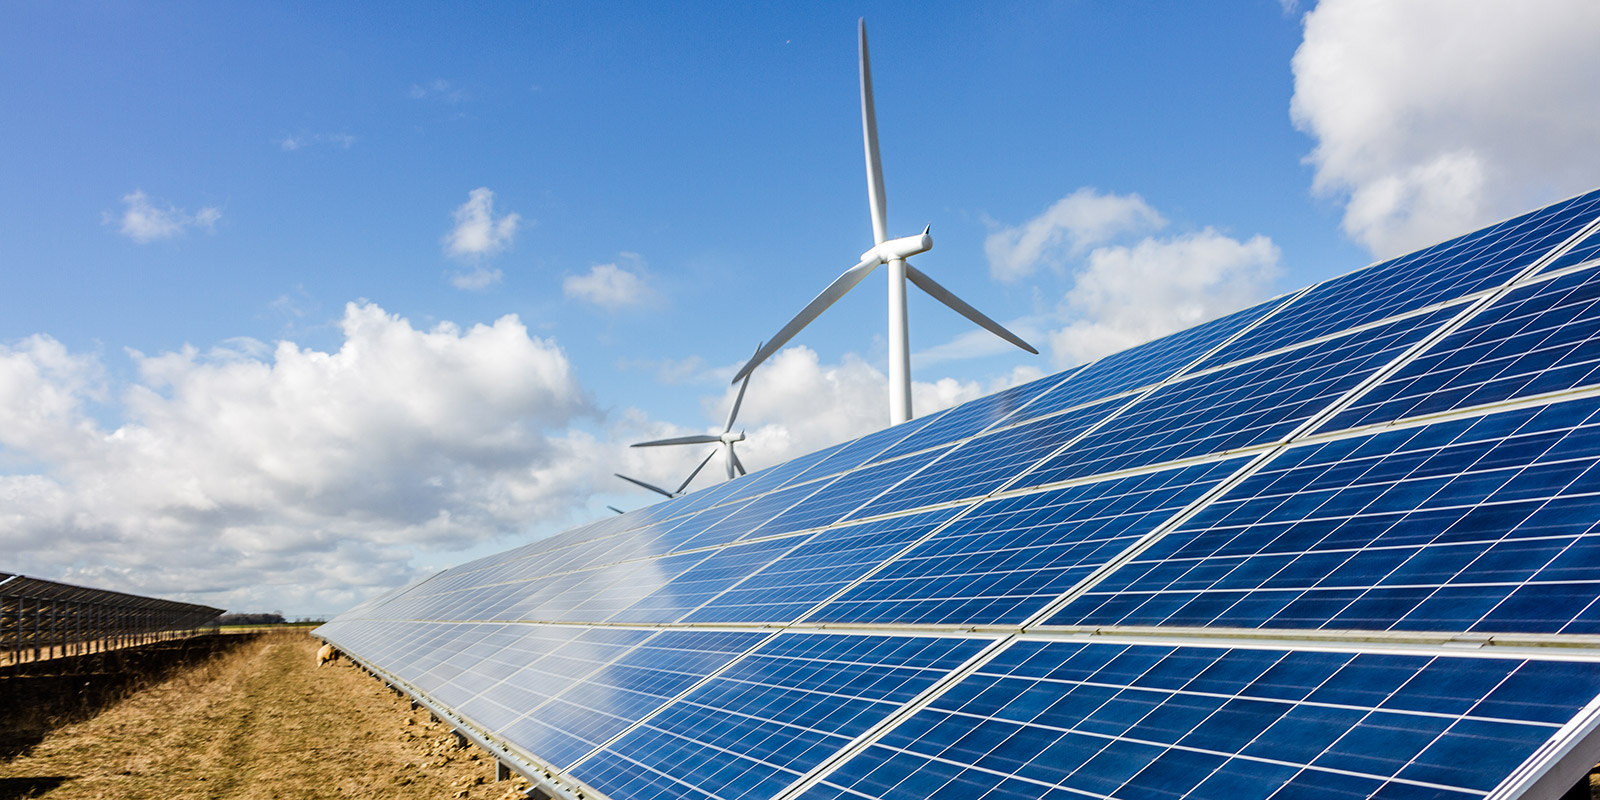 renewable energy engineering masters msc course london  renewable energy engineering masters msc course london postgraduate courses kingston university london